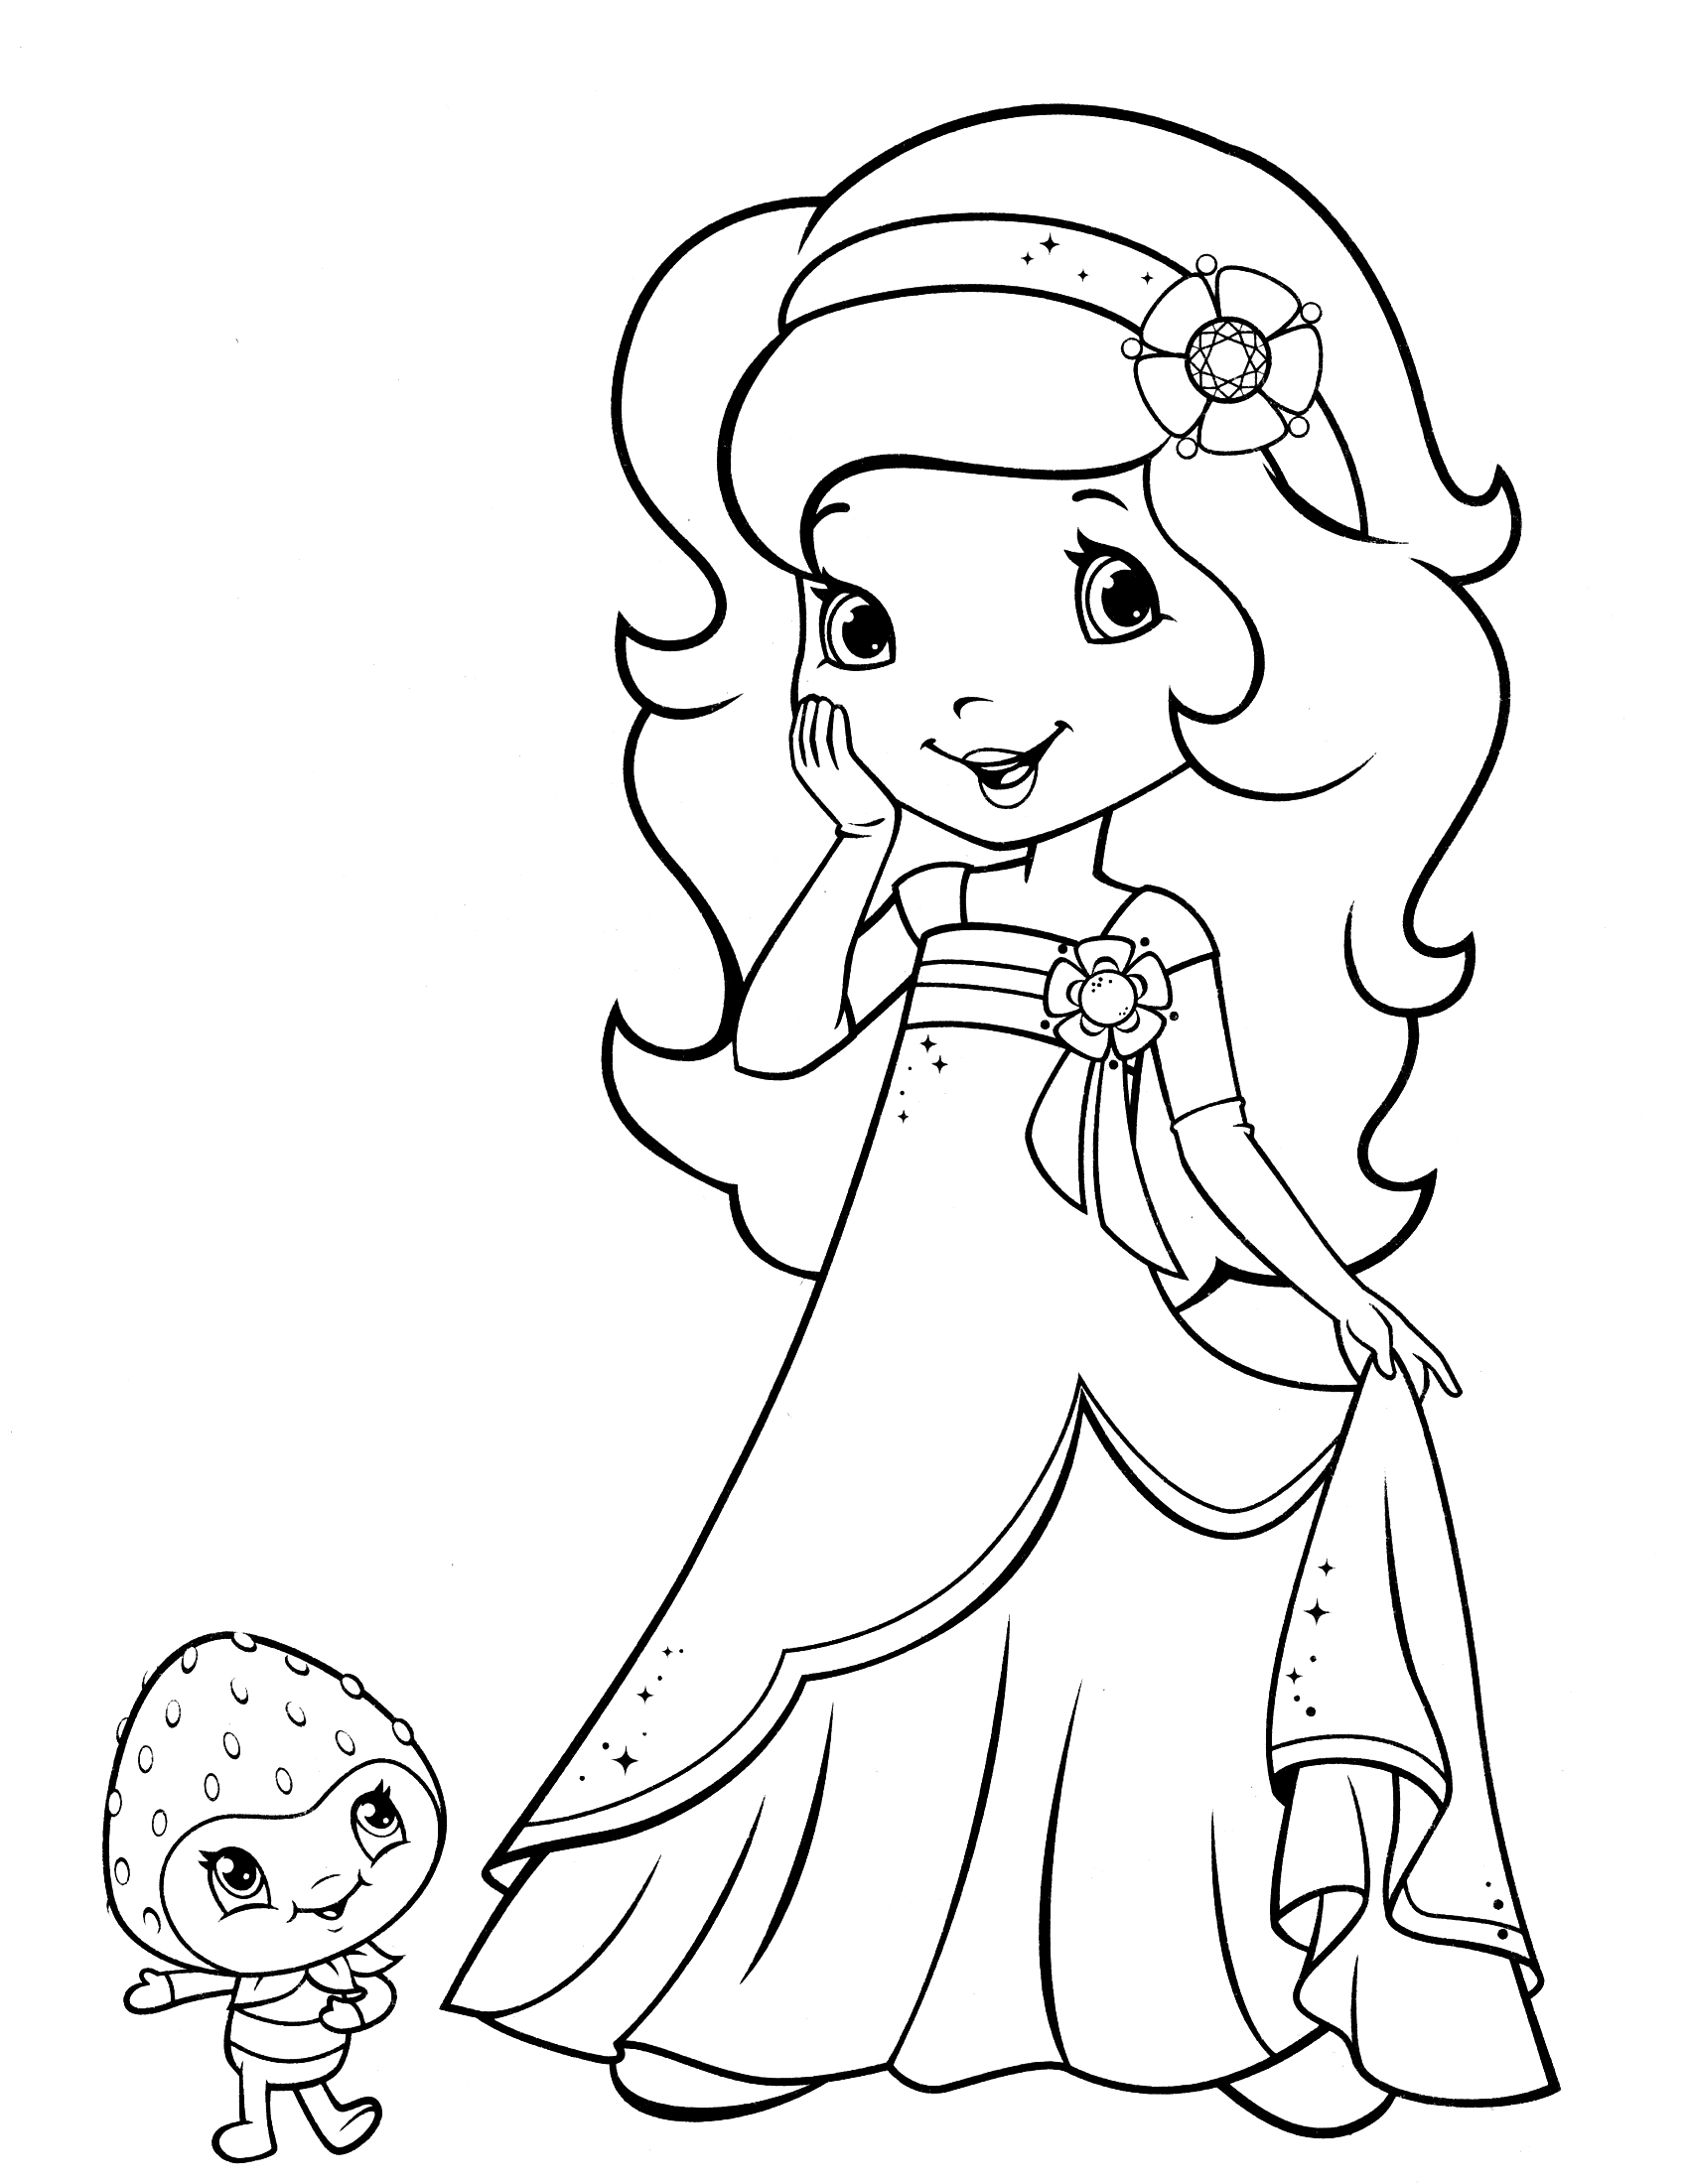 Raspberry Torte Coloring Pages